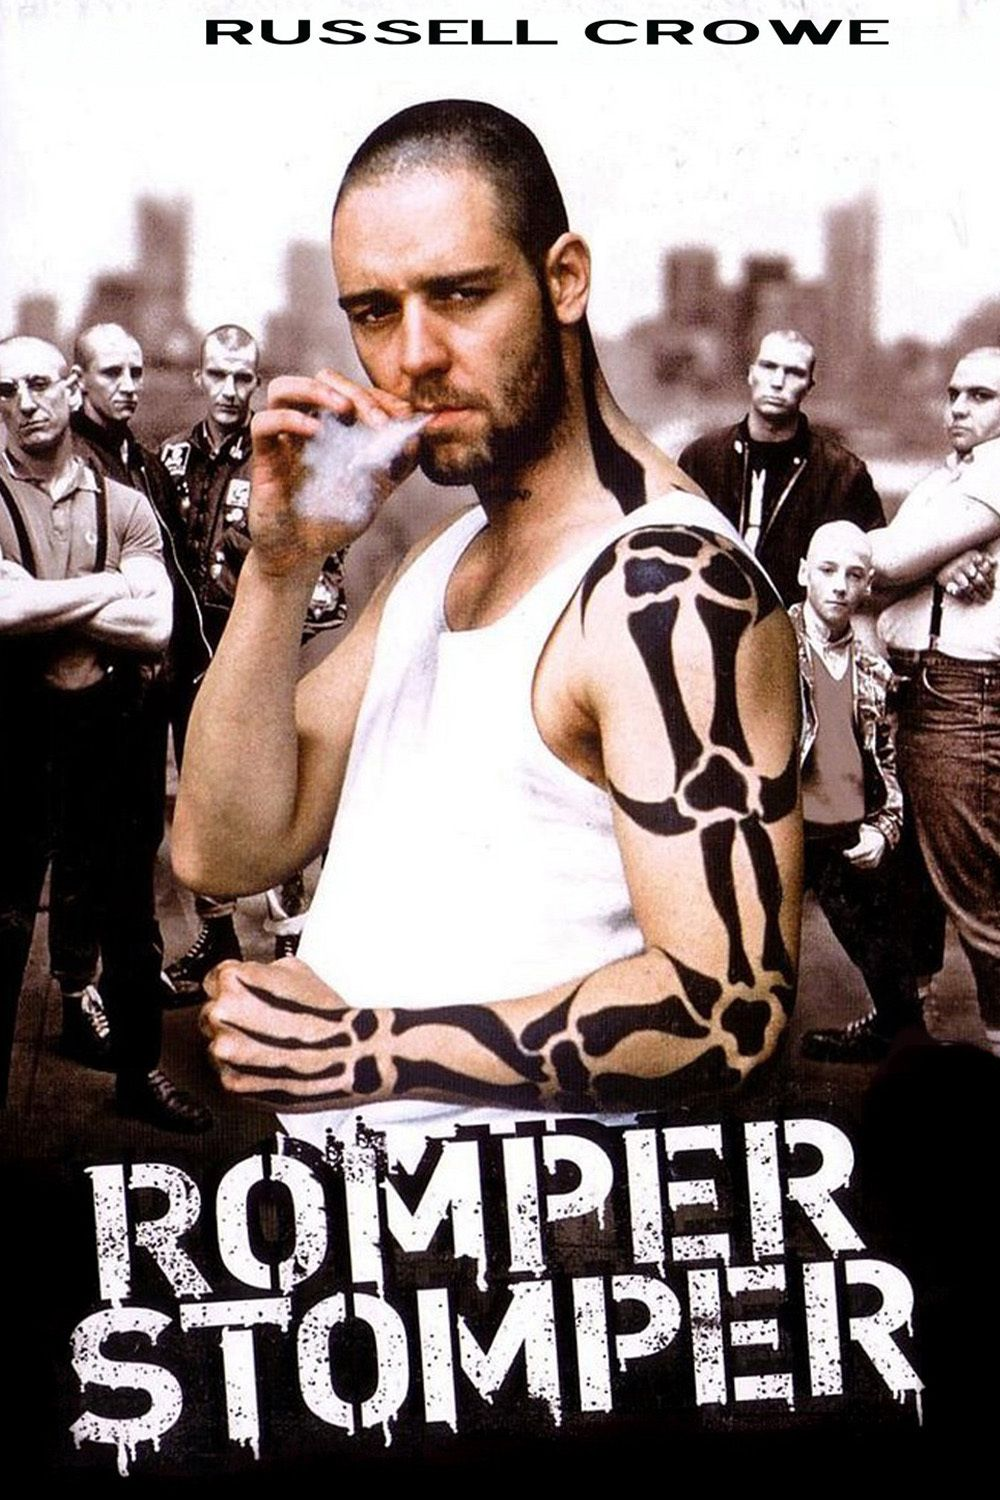 russell crowe as hando in romper stomper. a 1992 australian crime